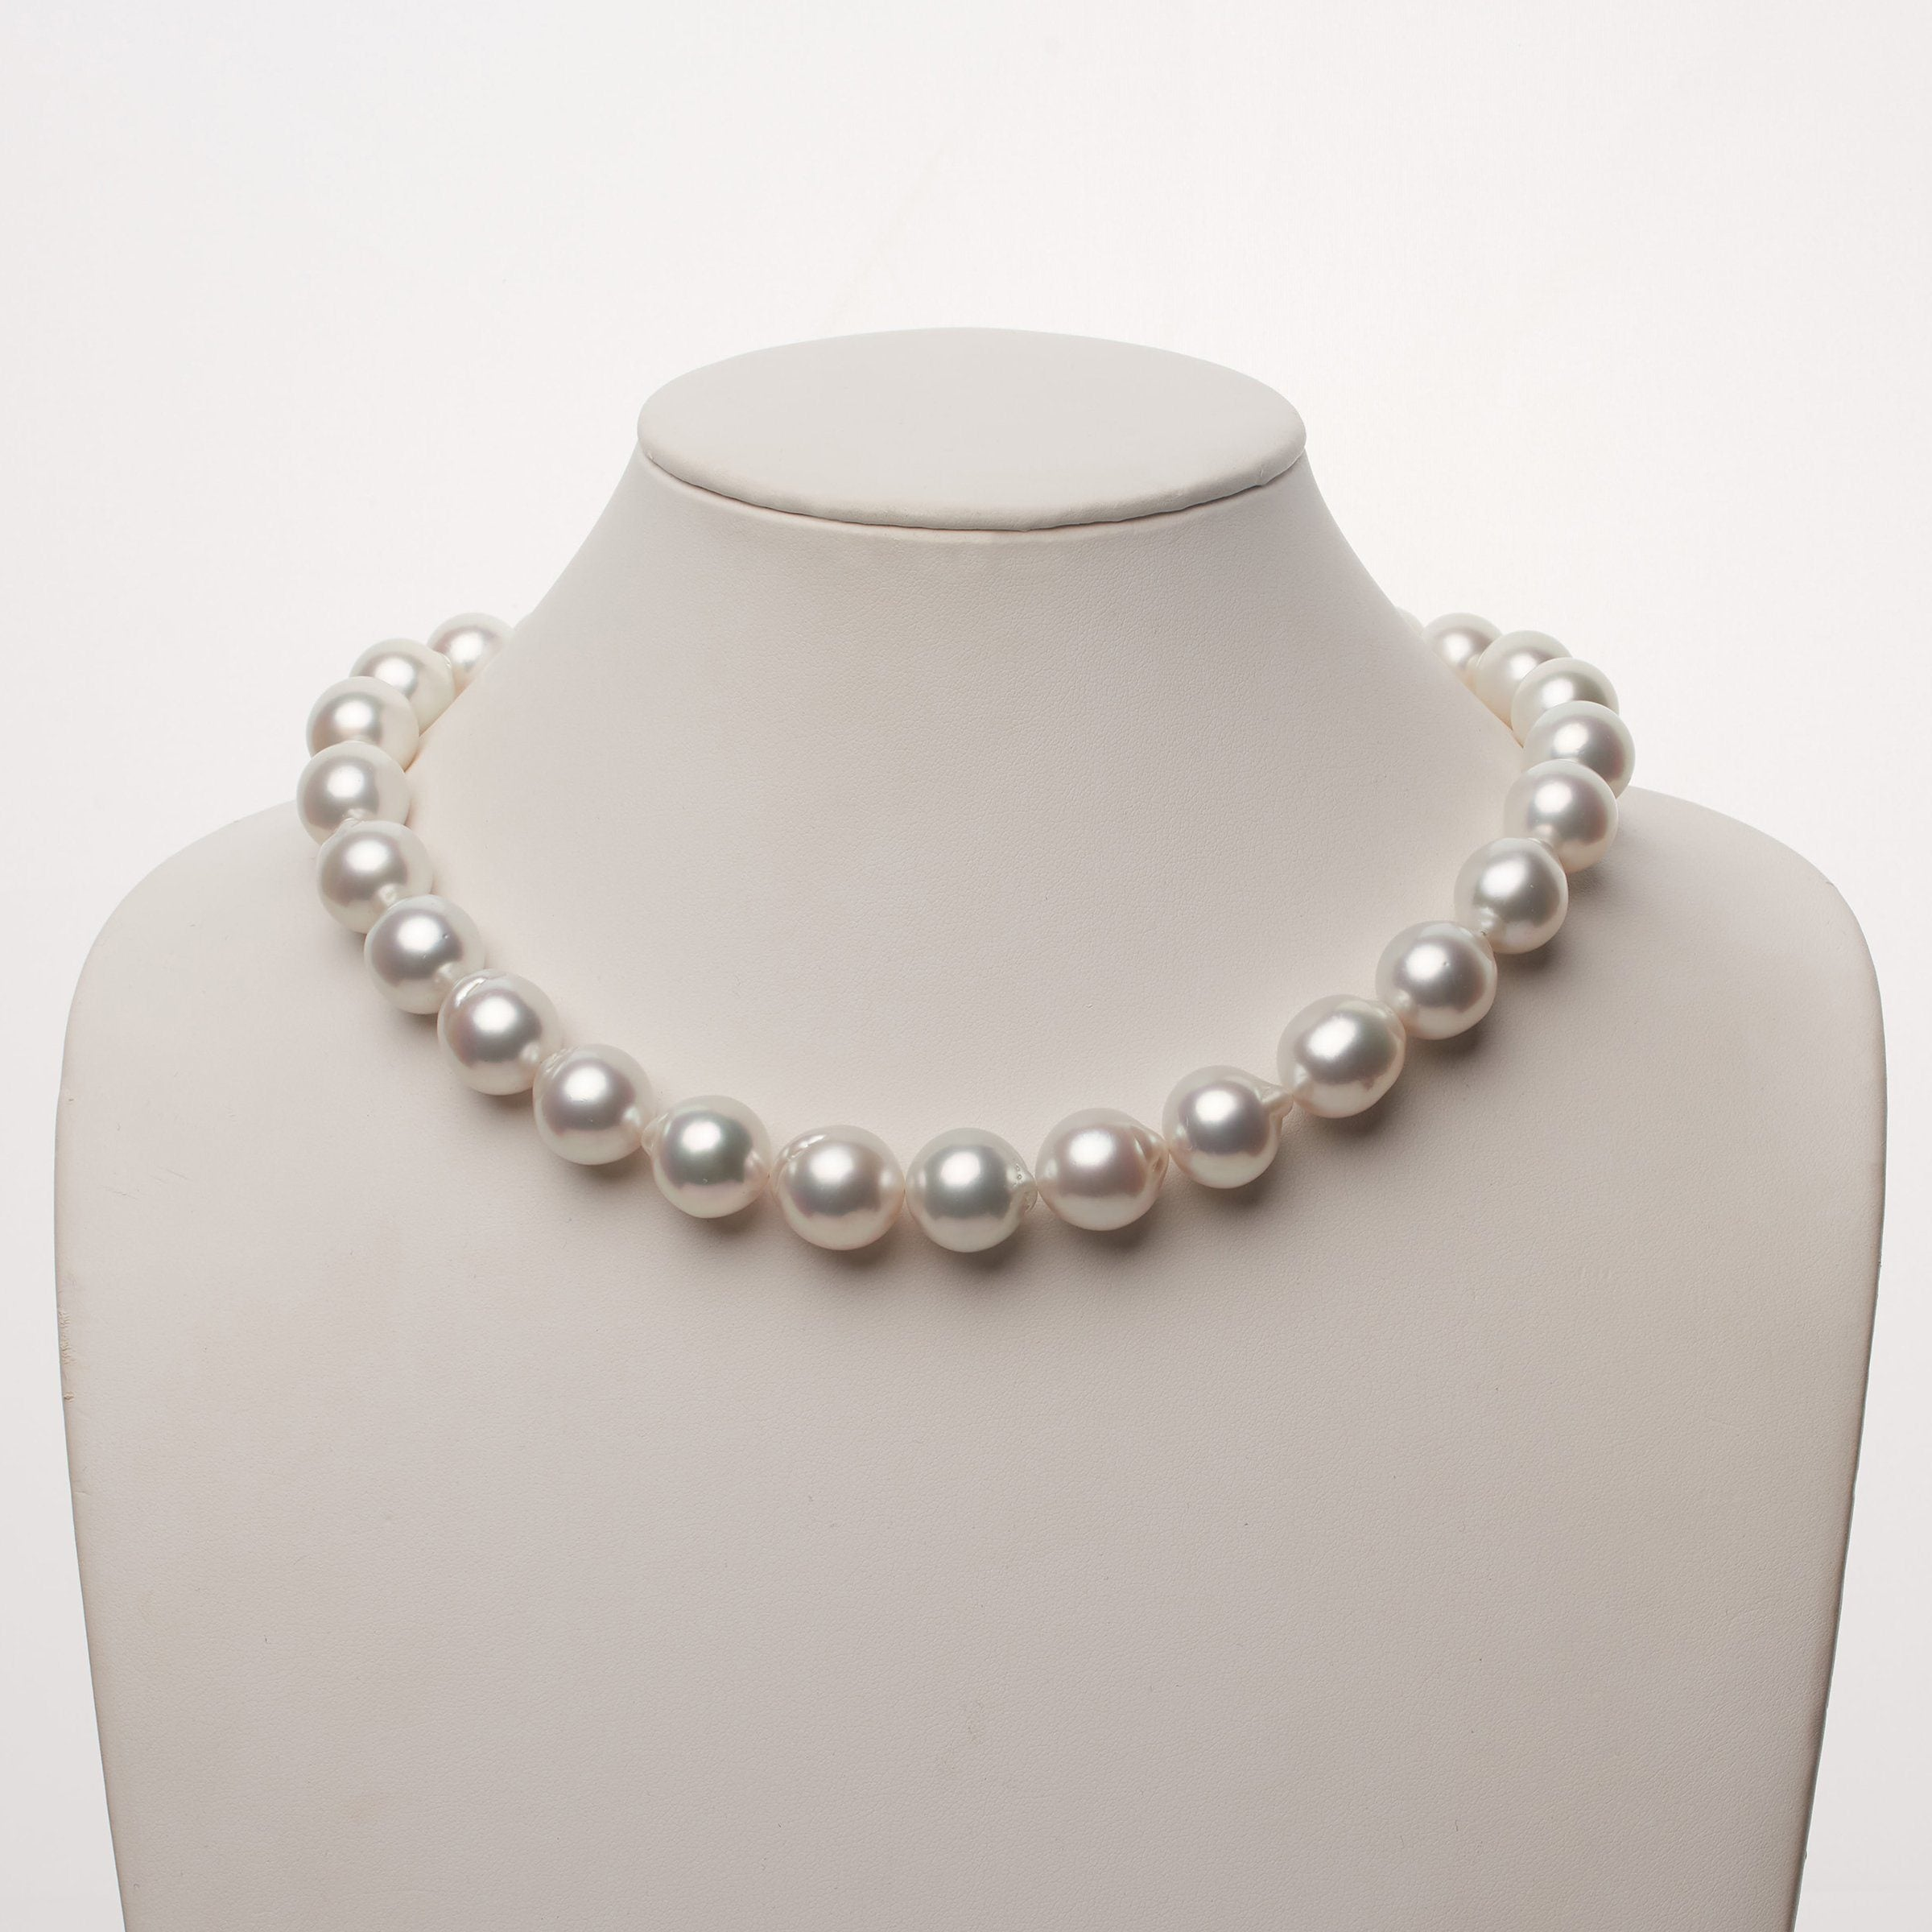 14.0-16.0 mm AA+/AAA White South Sea Baroque Pearl Necklace